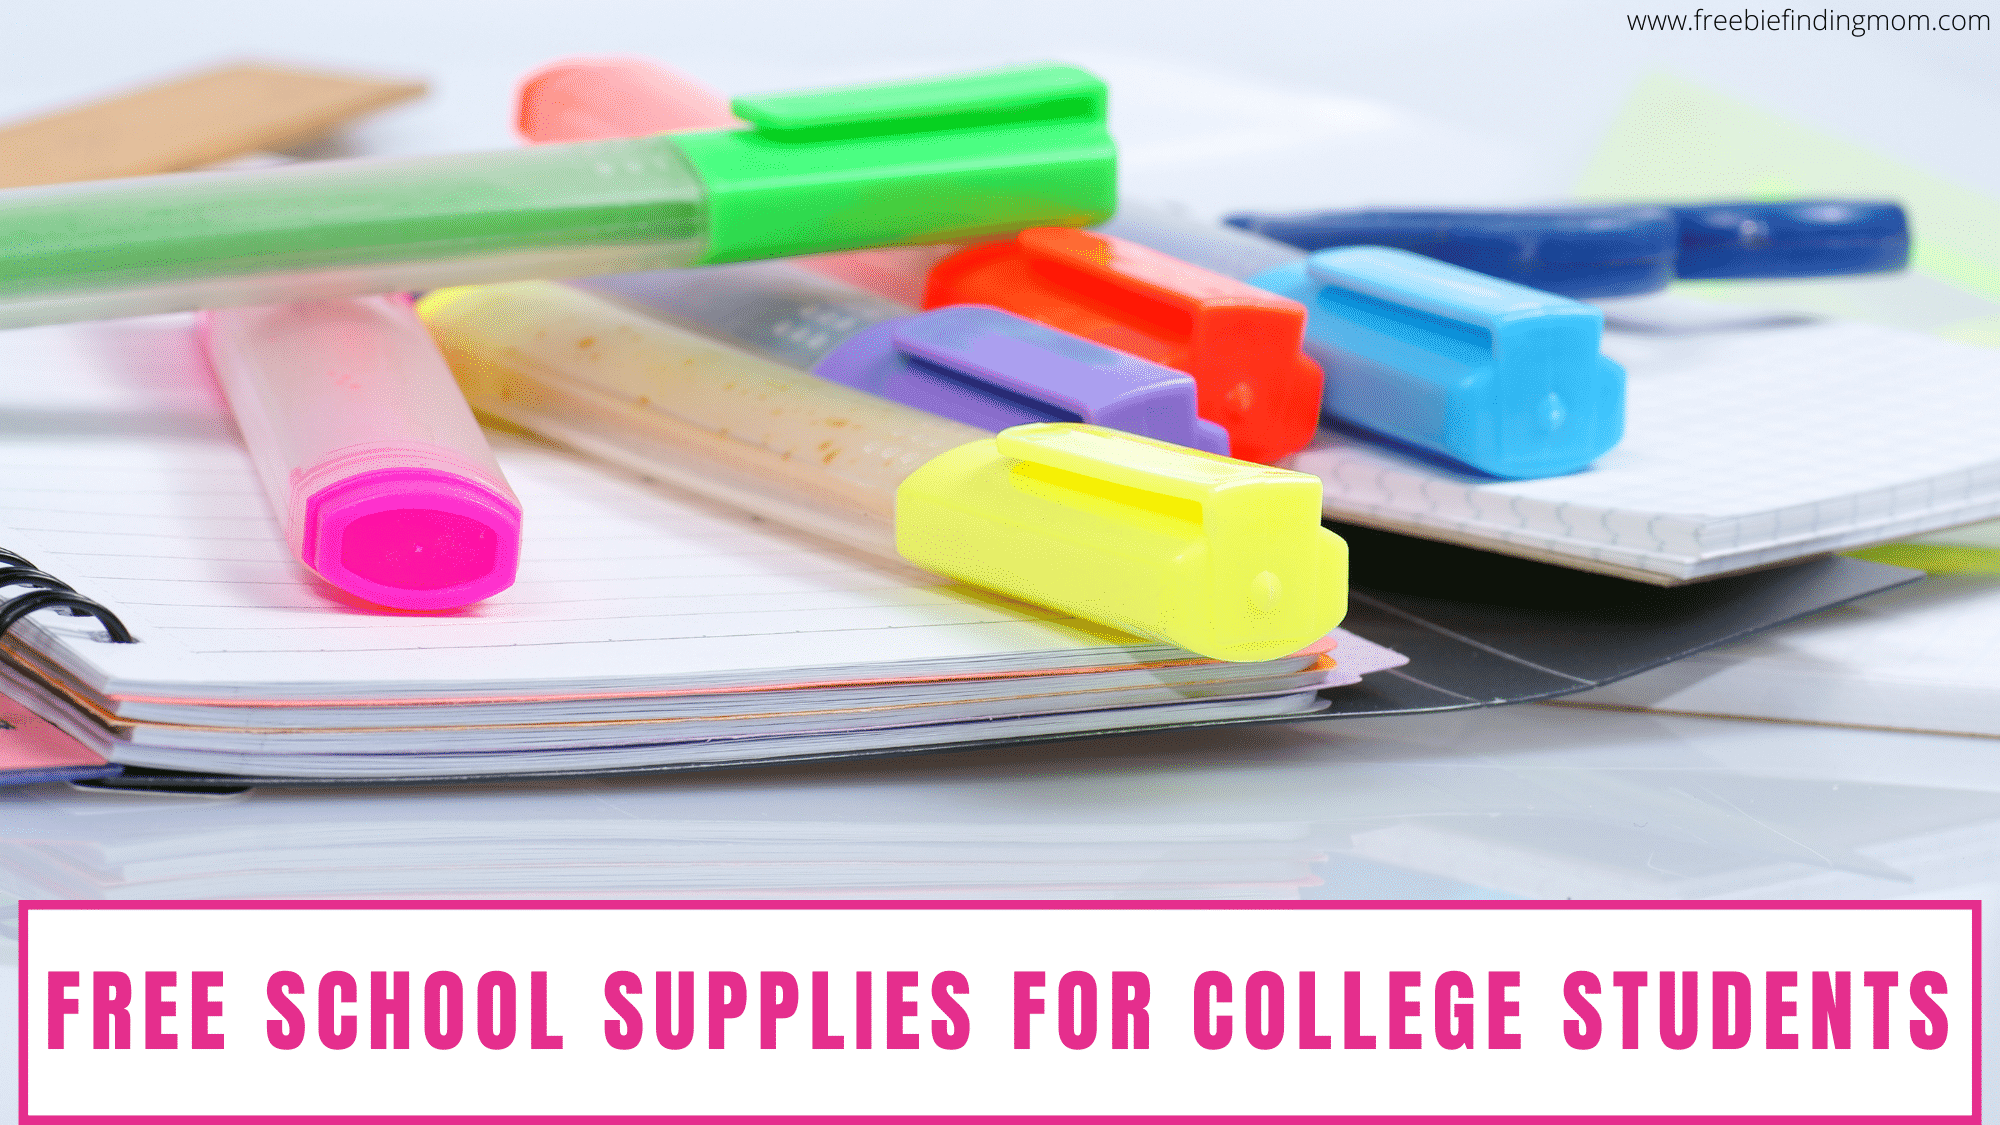 Paying for college is hard enough then you have to add other expenses like school supplies. Utilize resources like these tips to snag free school supplies for college students.